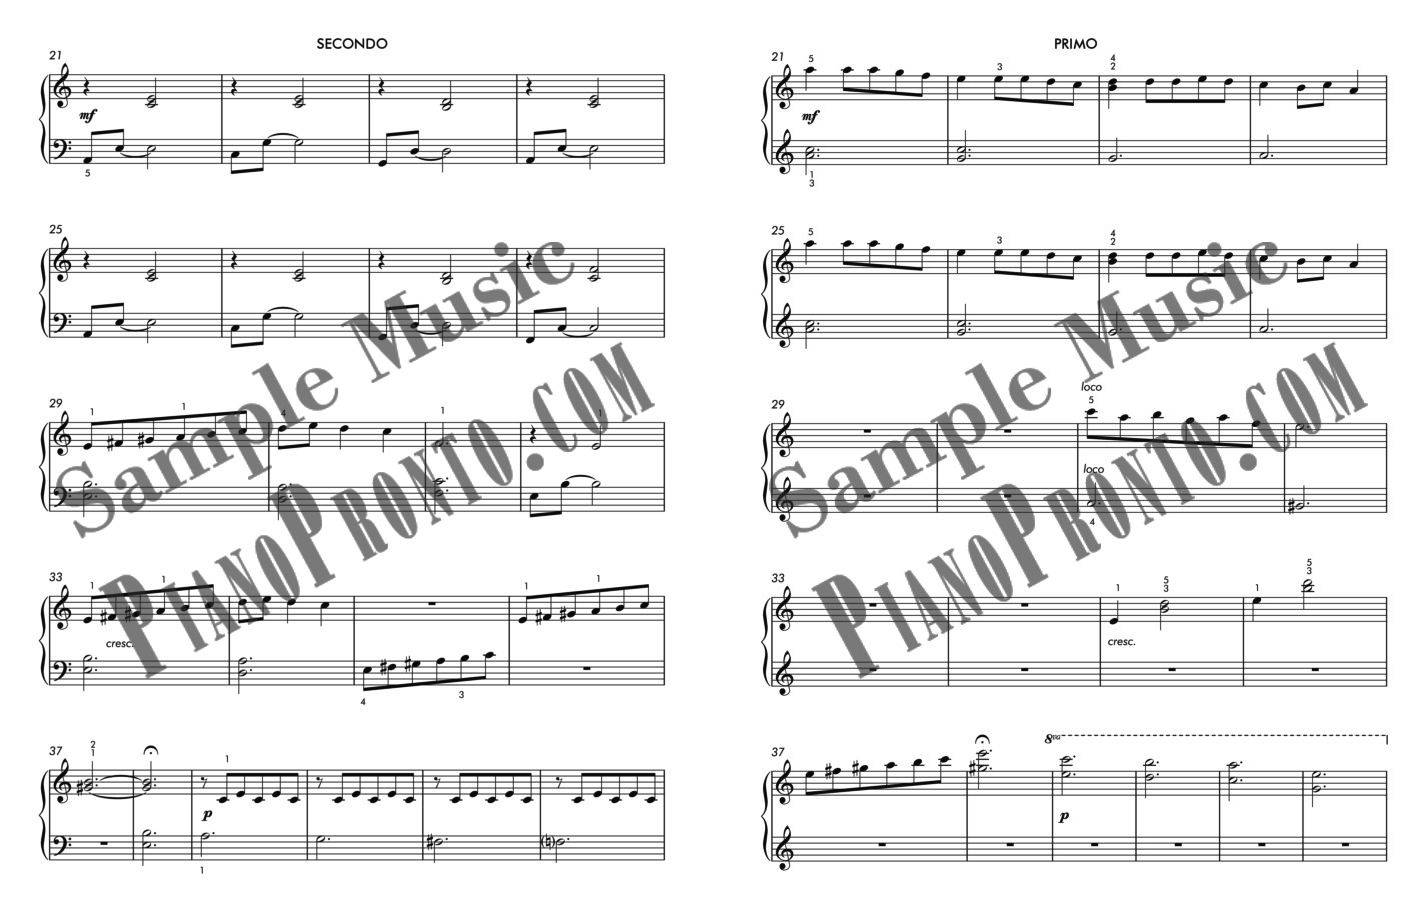 picture about Carol of the Bells Free Printable Sheet Music named Ukrainian Bell Carol Duet